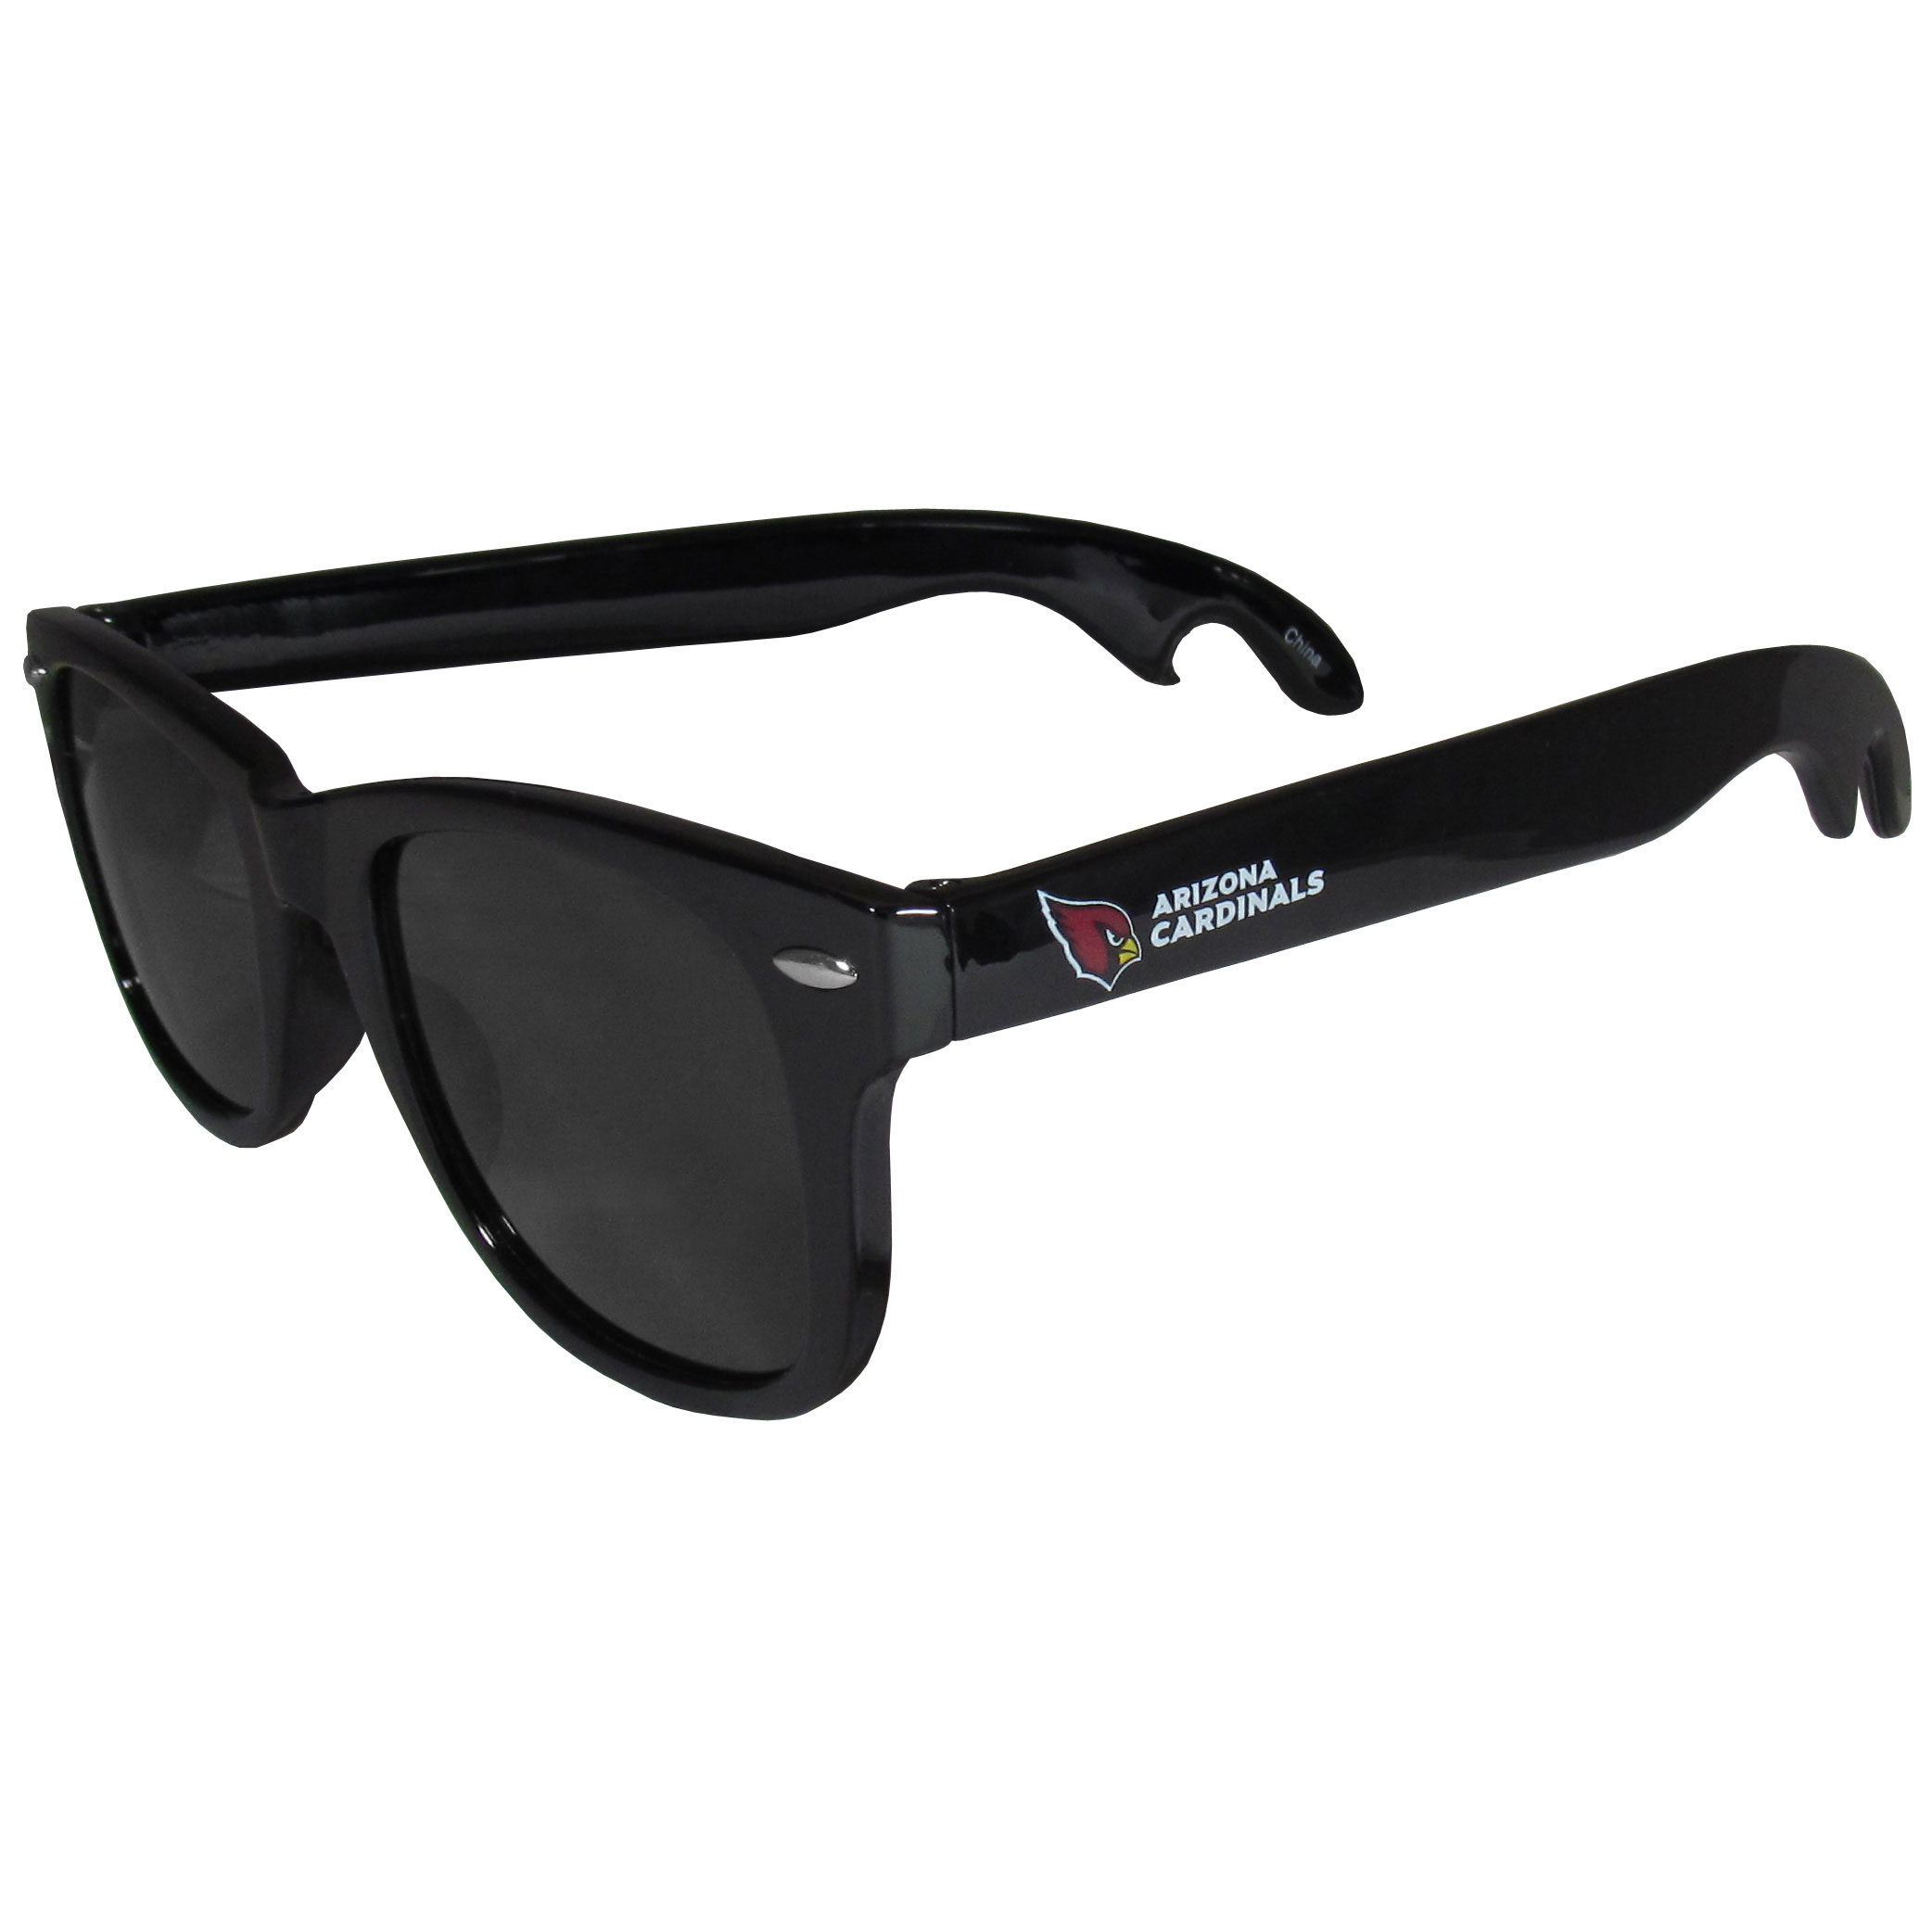 Arizona Cardinals Beachfarer Bottle Opener Sunglasses - Seriously, these sunglasses open bottles! Keep the party going with these amazing Arizona Cardinals bottle opener sunglasses. The stylish retro frames feature team designs on the arms and functional bottle openers on the end of the arms. Whether you are at the beach or having a backyard BBQ on game day, these shades will keep your eyes protected with 100% UVA/UVB protection and keep you hydrated with the handy bottle opener arms.